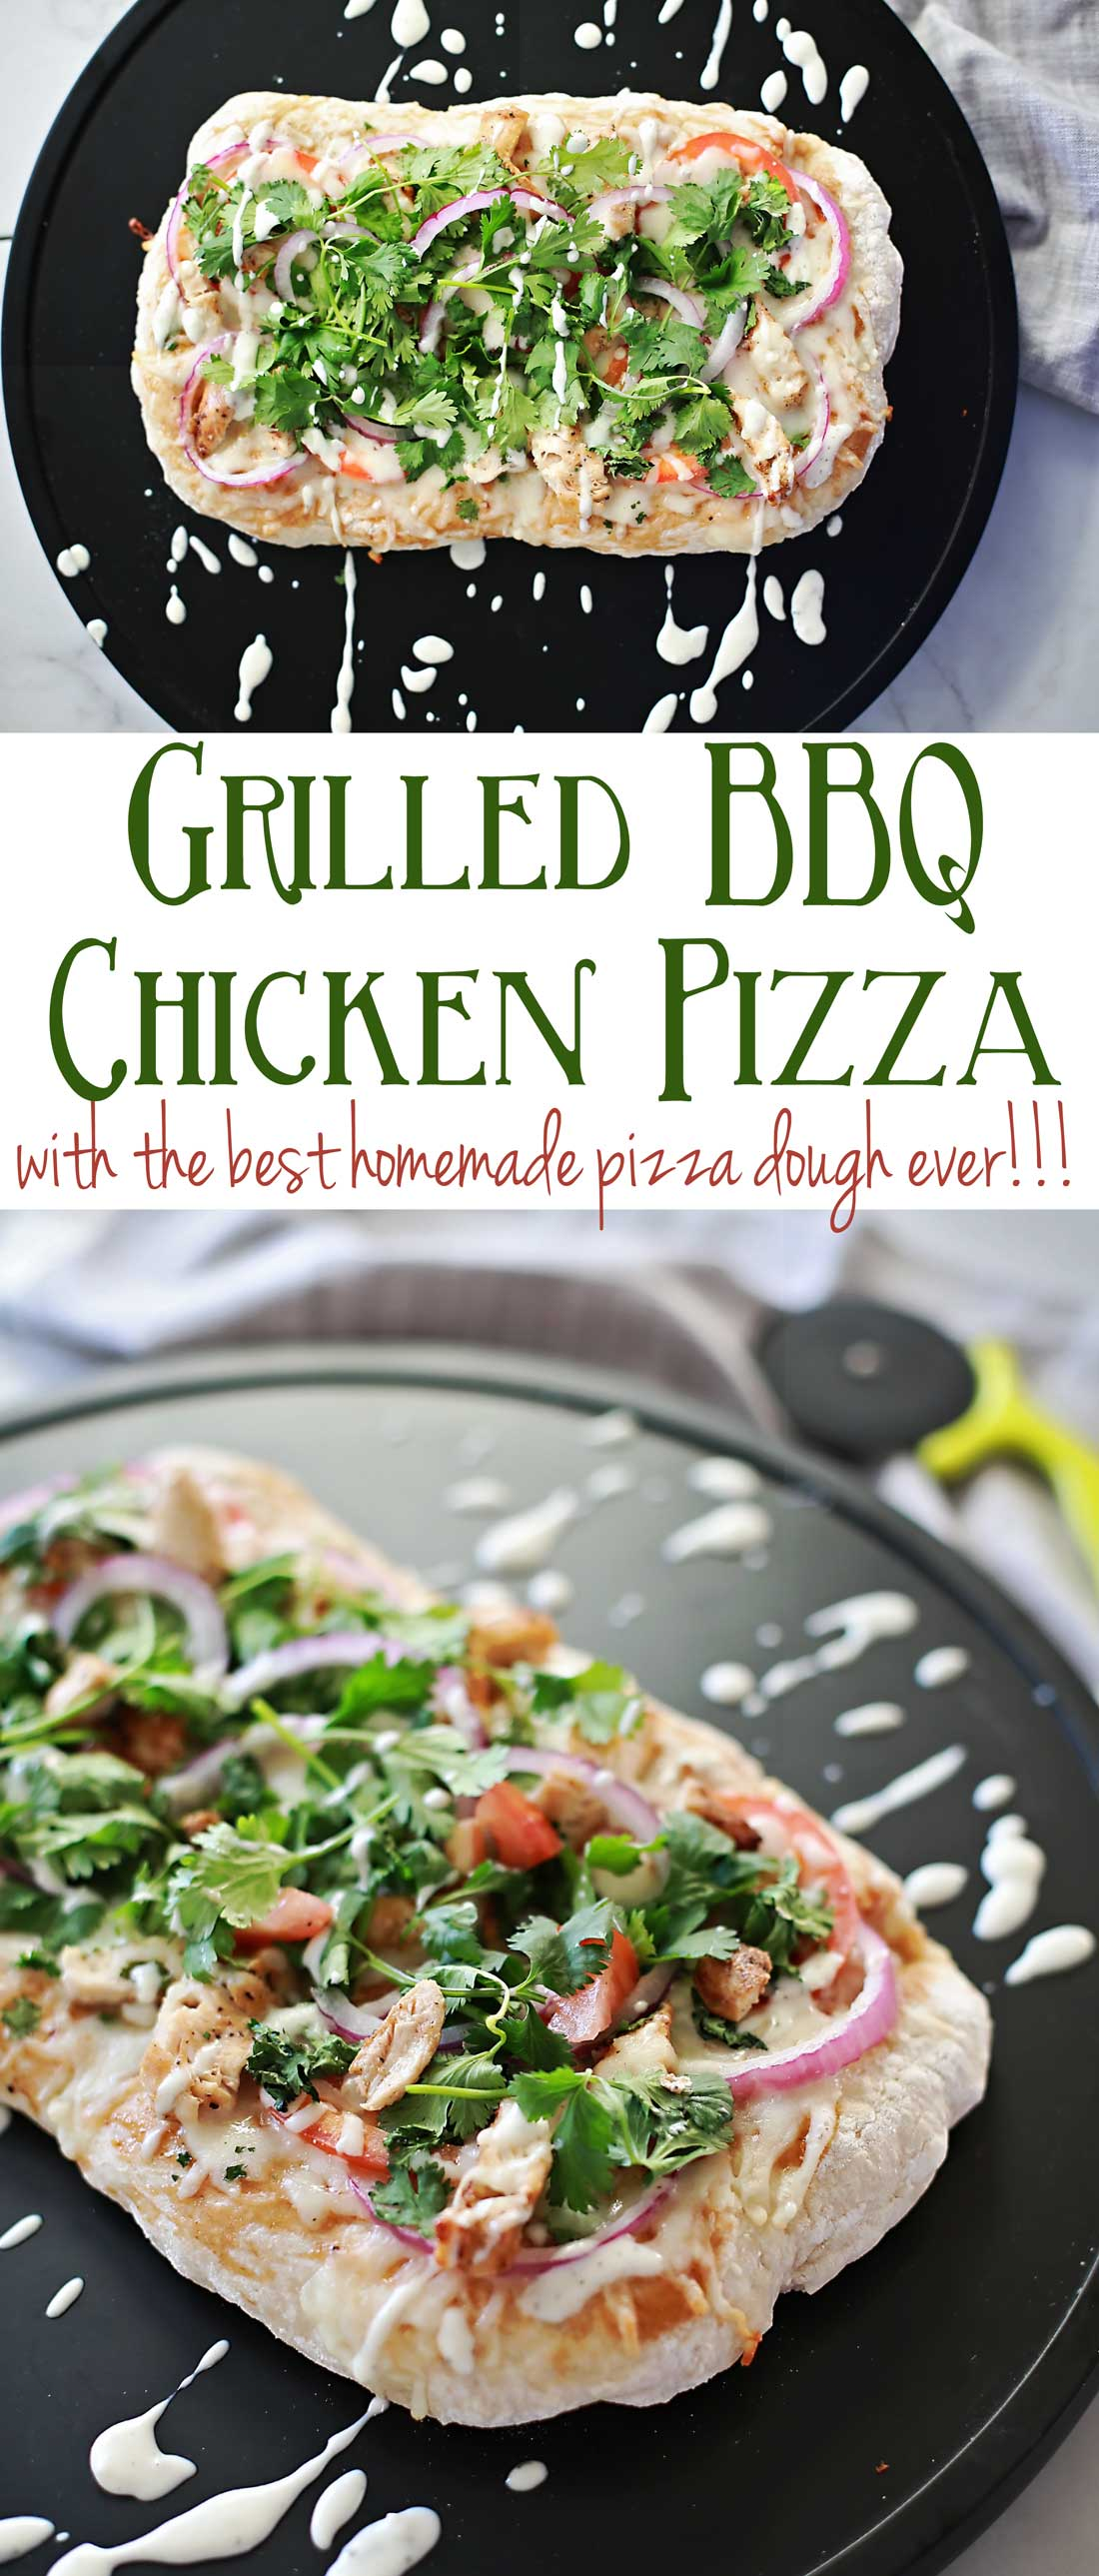 AMAZING BBQ Chicken Pizza!